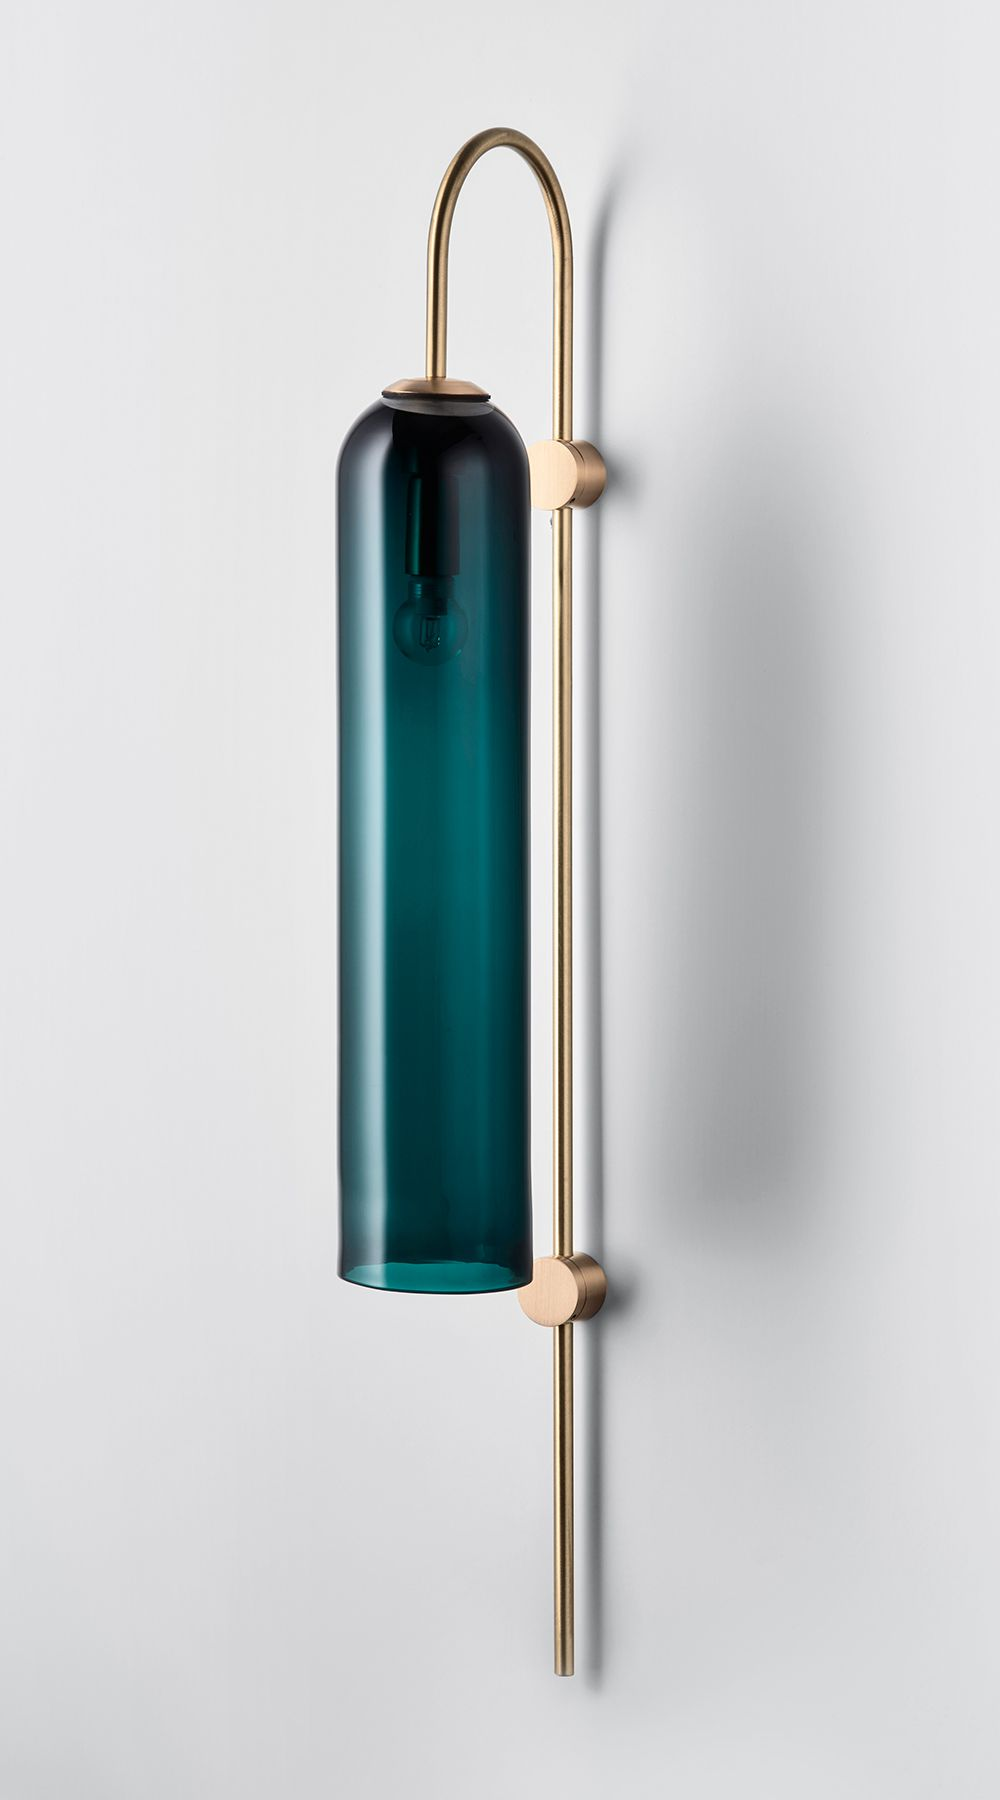 Float Minimalist Lighting by Articolo - Design Milk